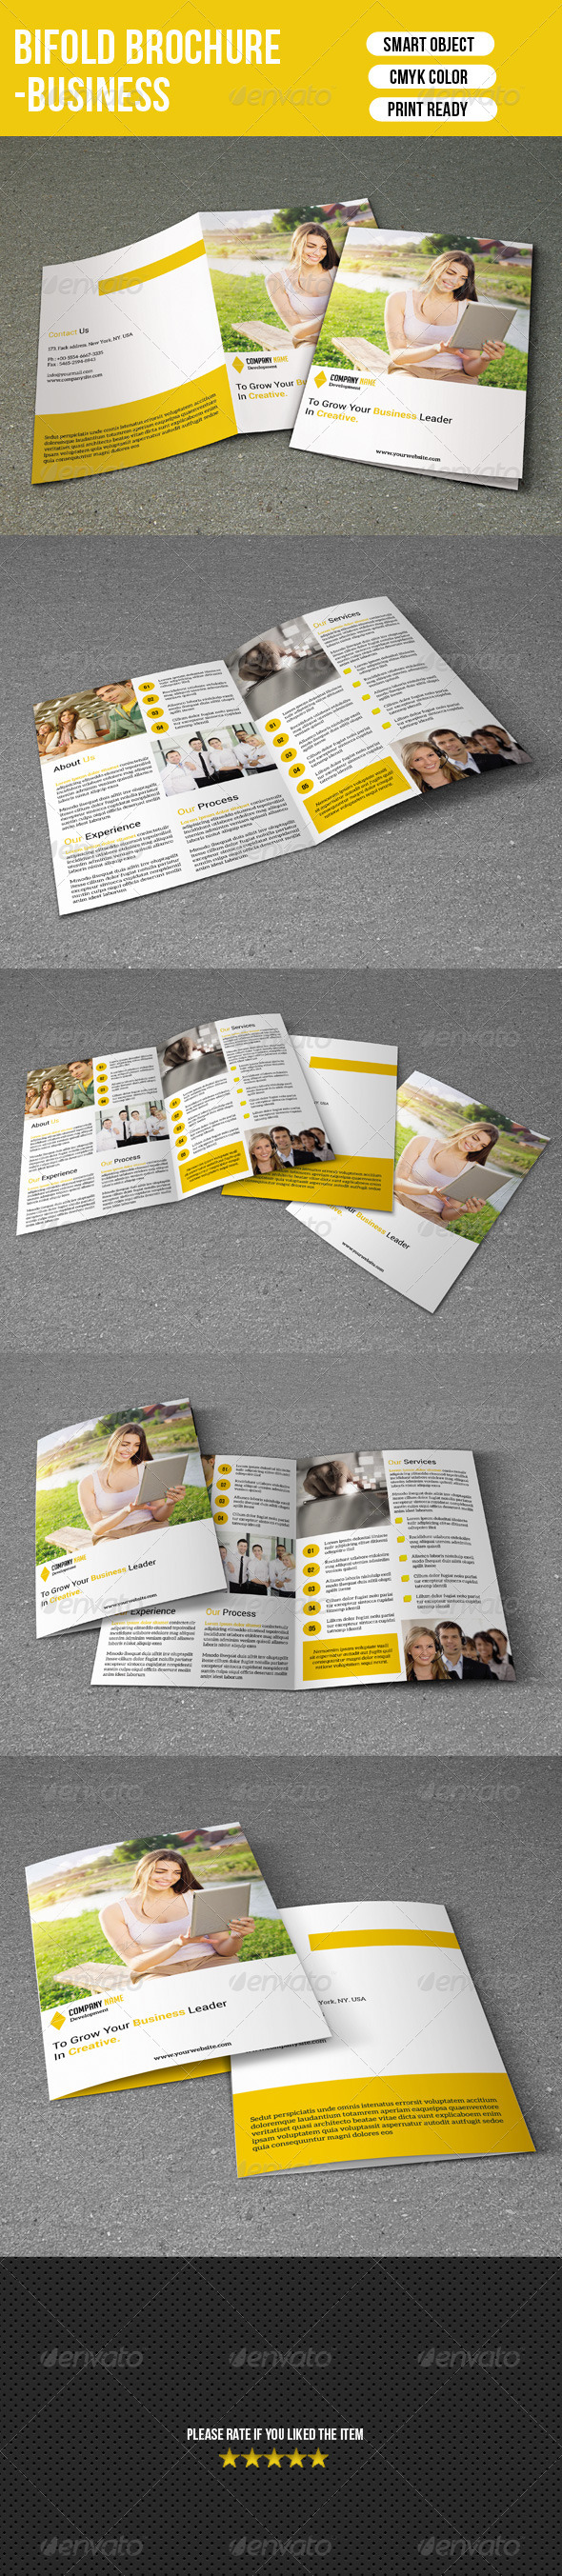 GraphicRiver Business Brochure Template 7506866